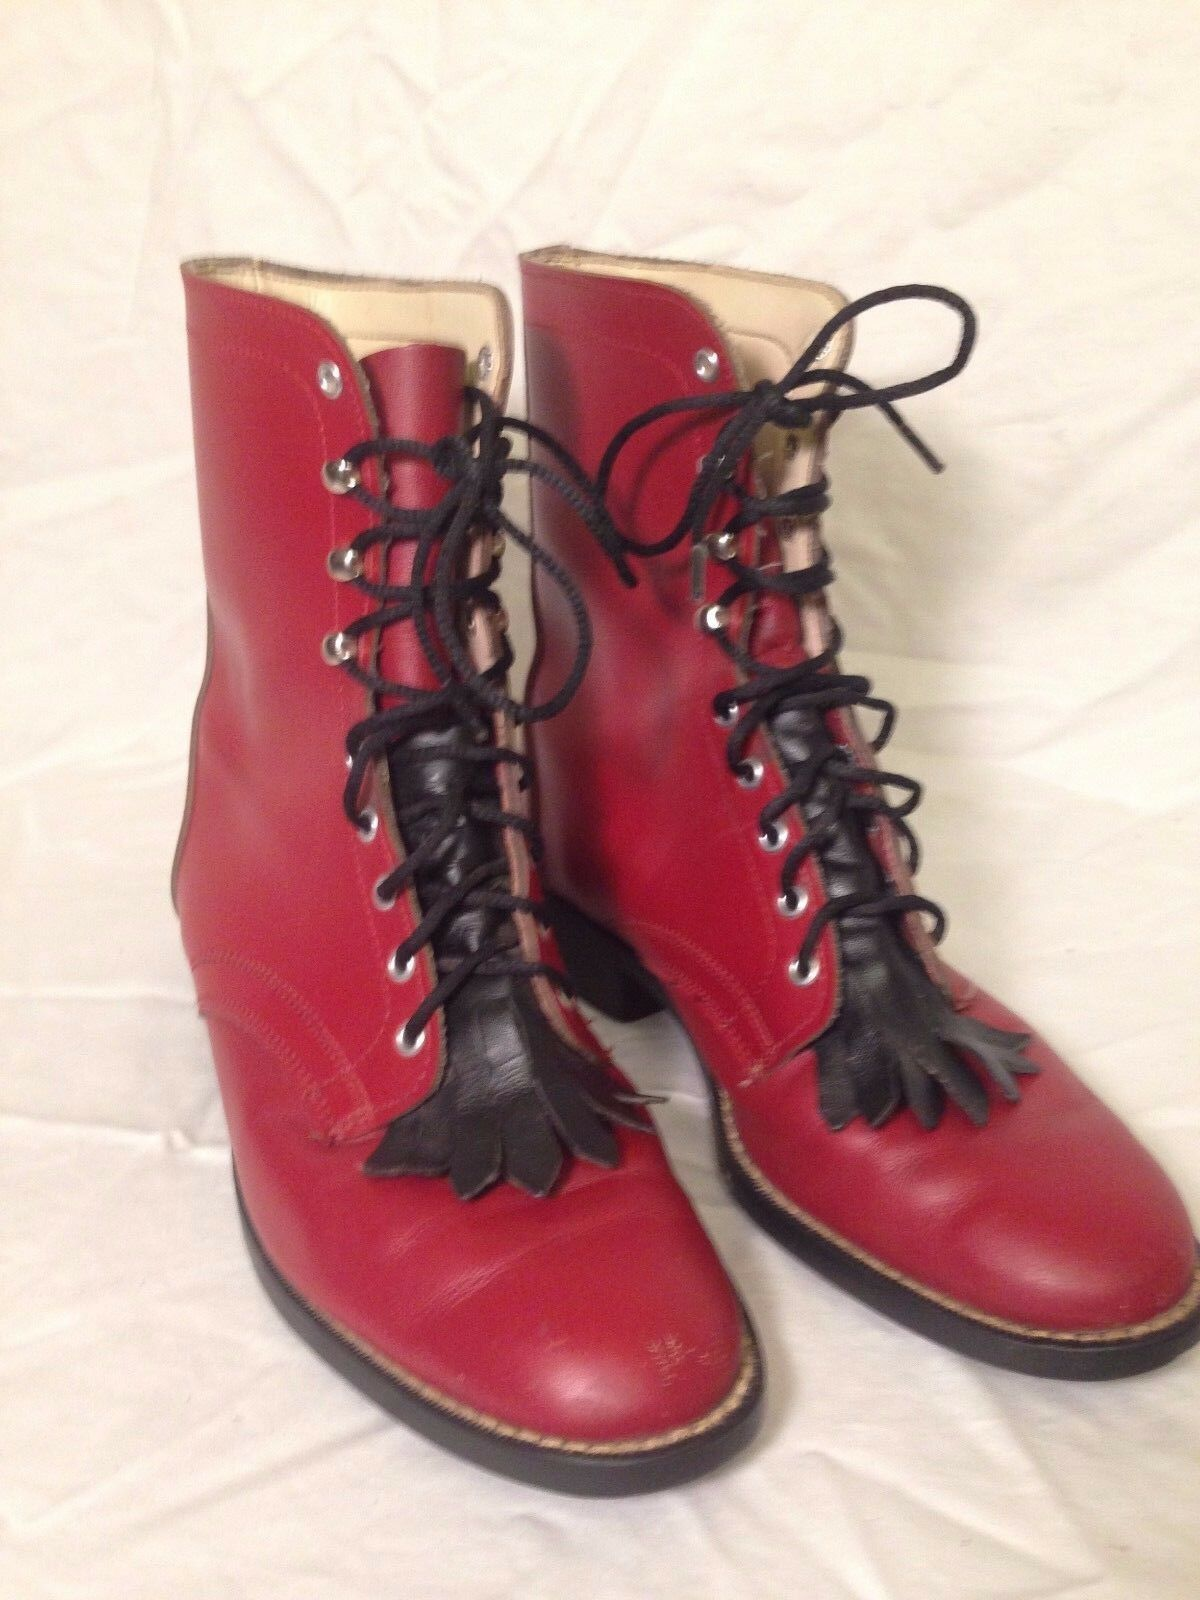 Red Laredo girls boots size 4.5